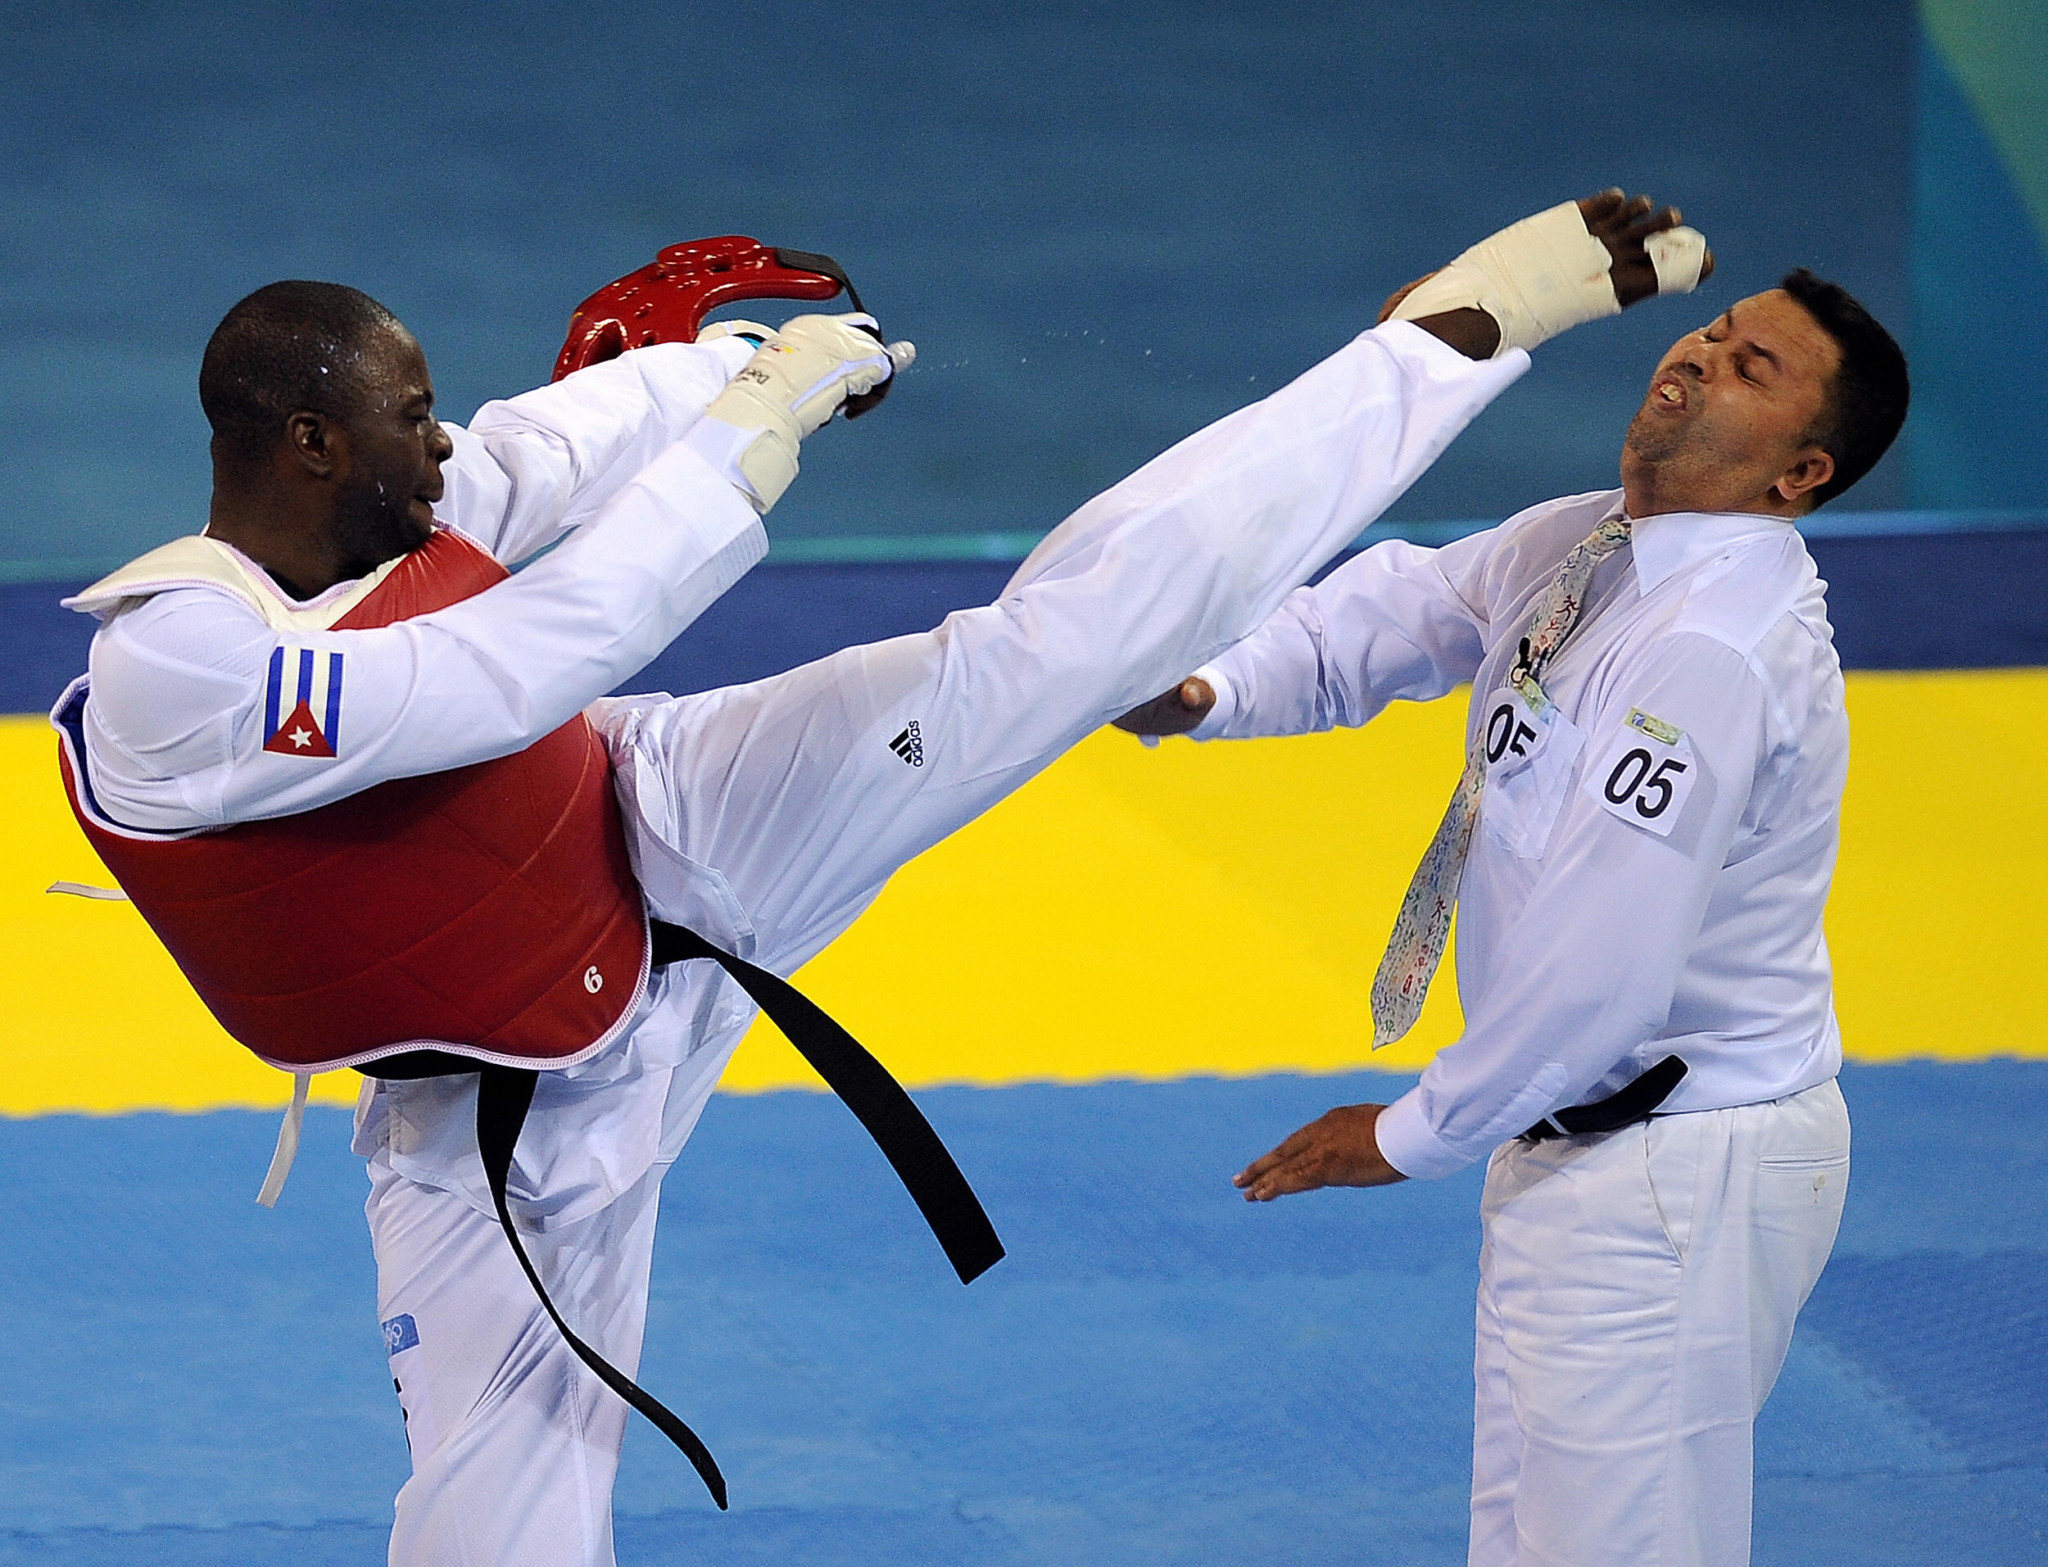 Cuba's Ángel Matos attacked a referee during the Beijing 2008 Olympics ©Getty Images